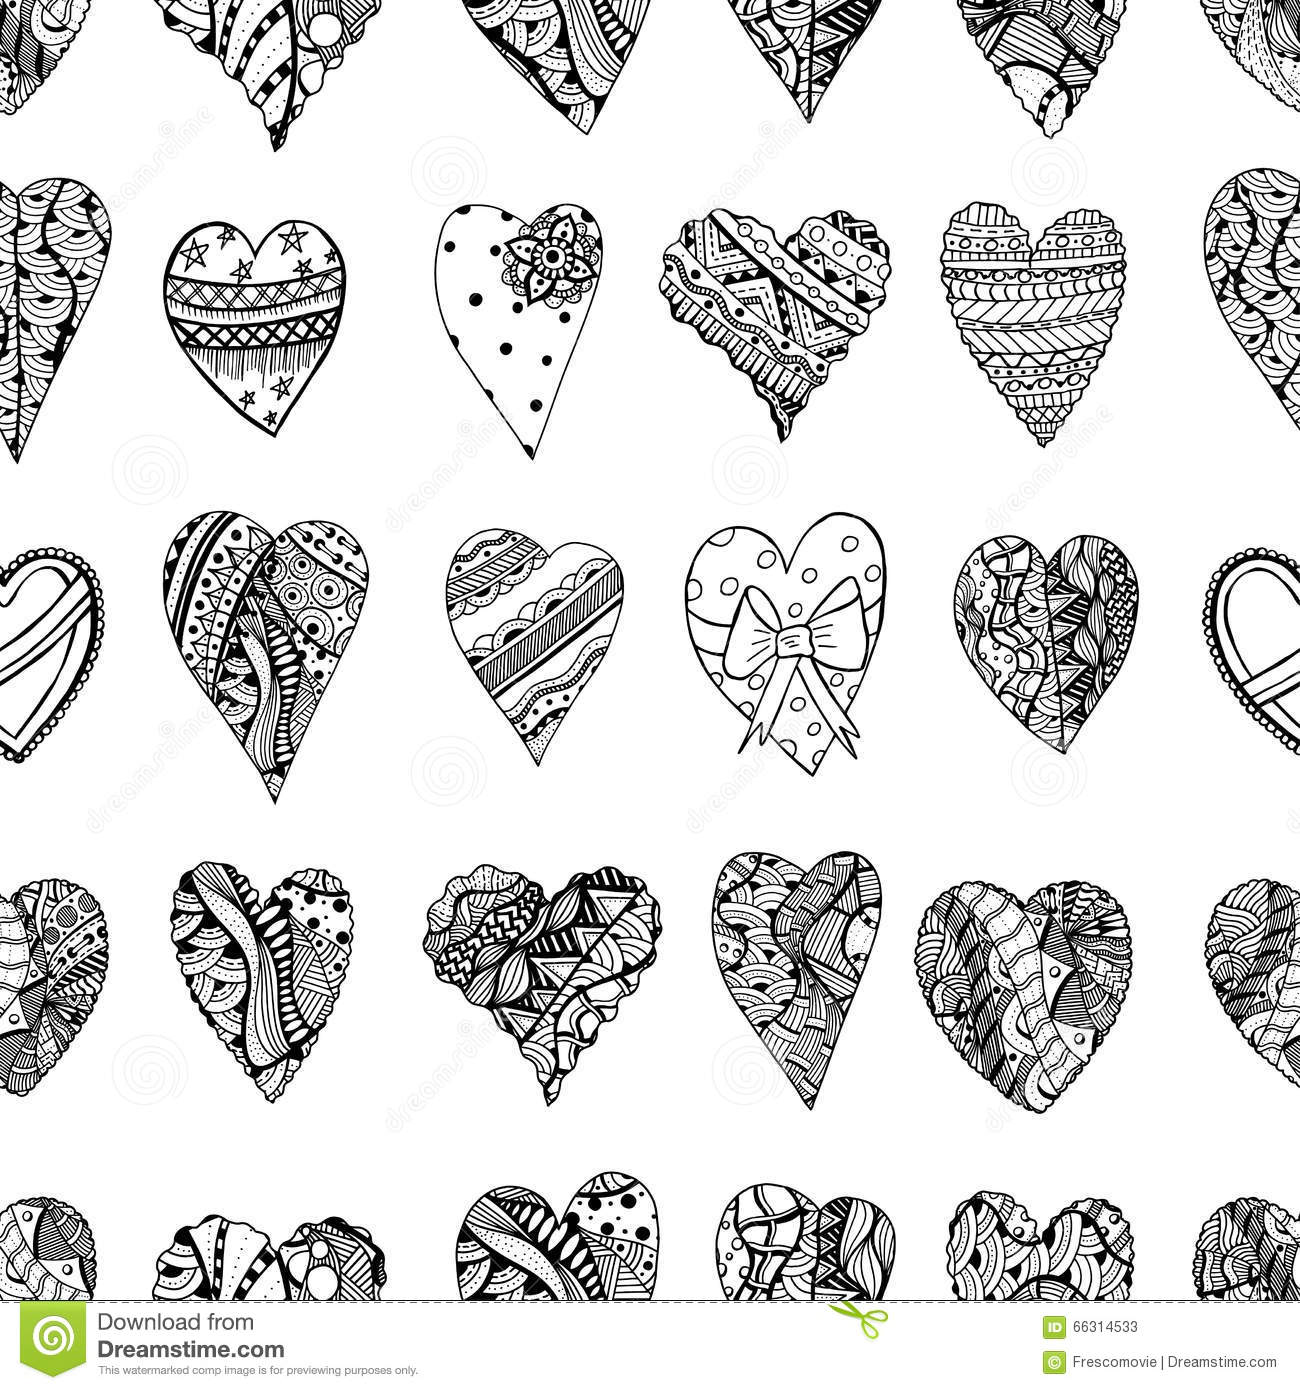 doodle heart coloring page ornamental stock vector illustration of 4277